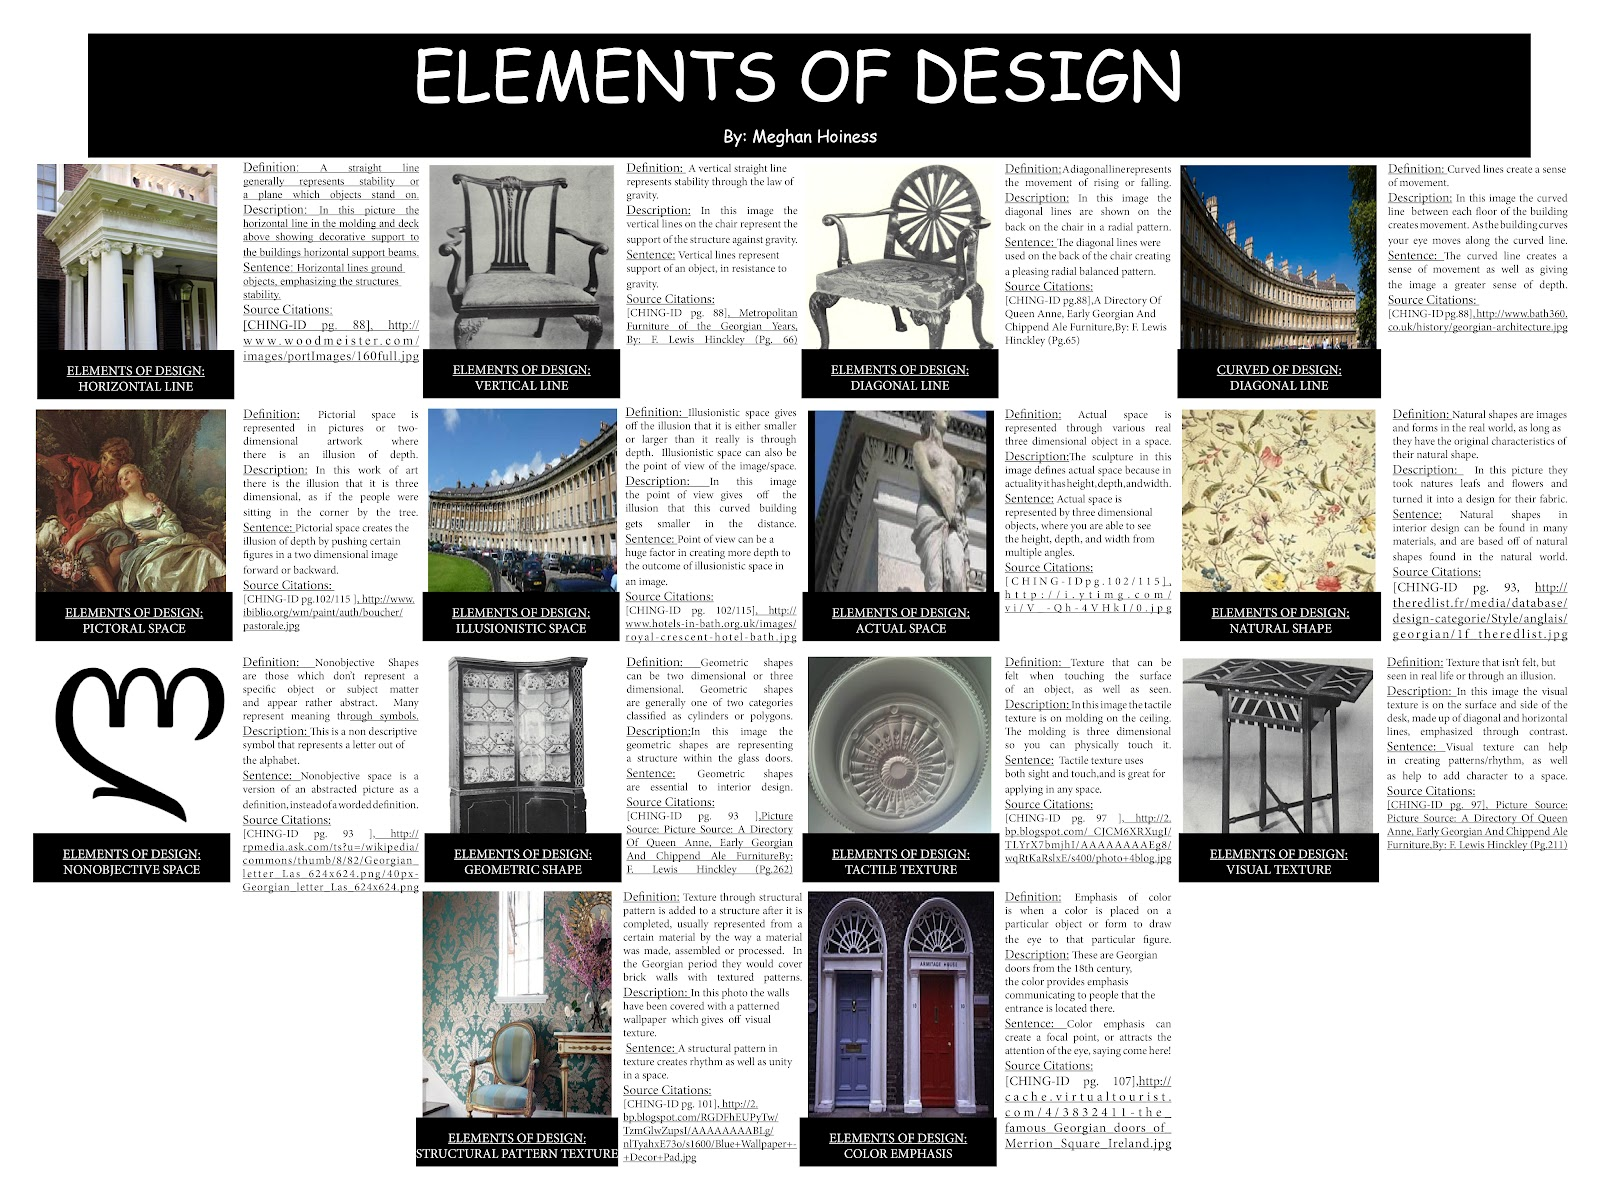 Meghans Interior Design Elements Principles of Desgin